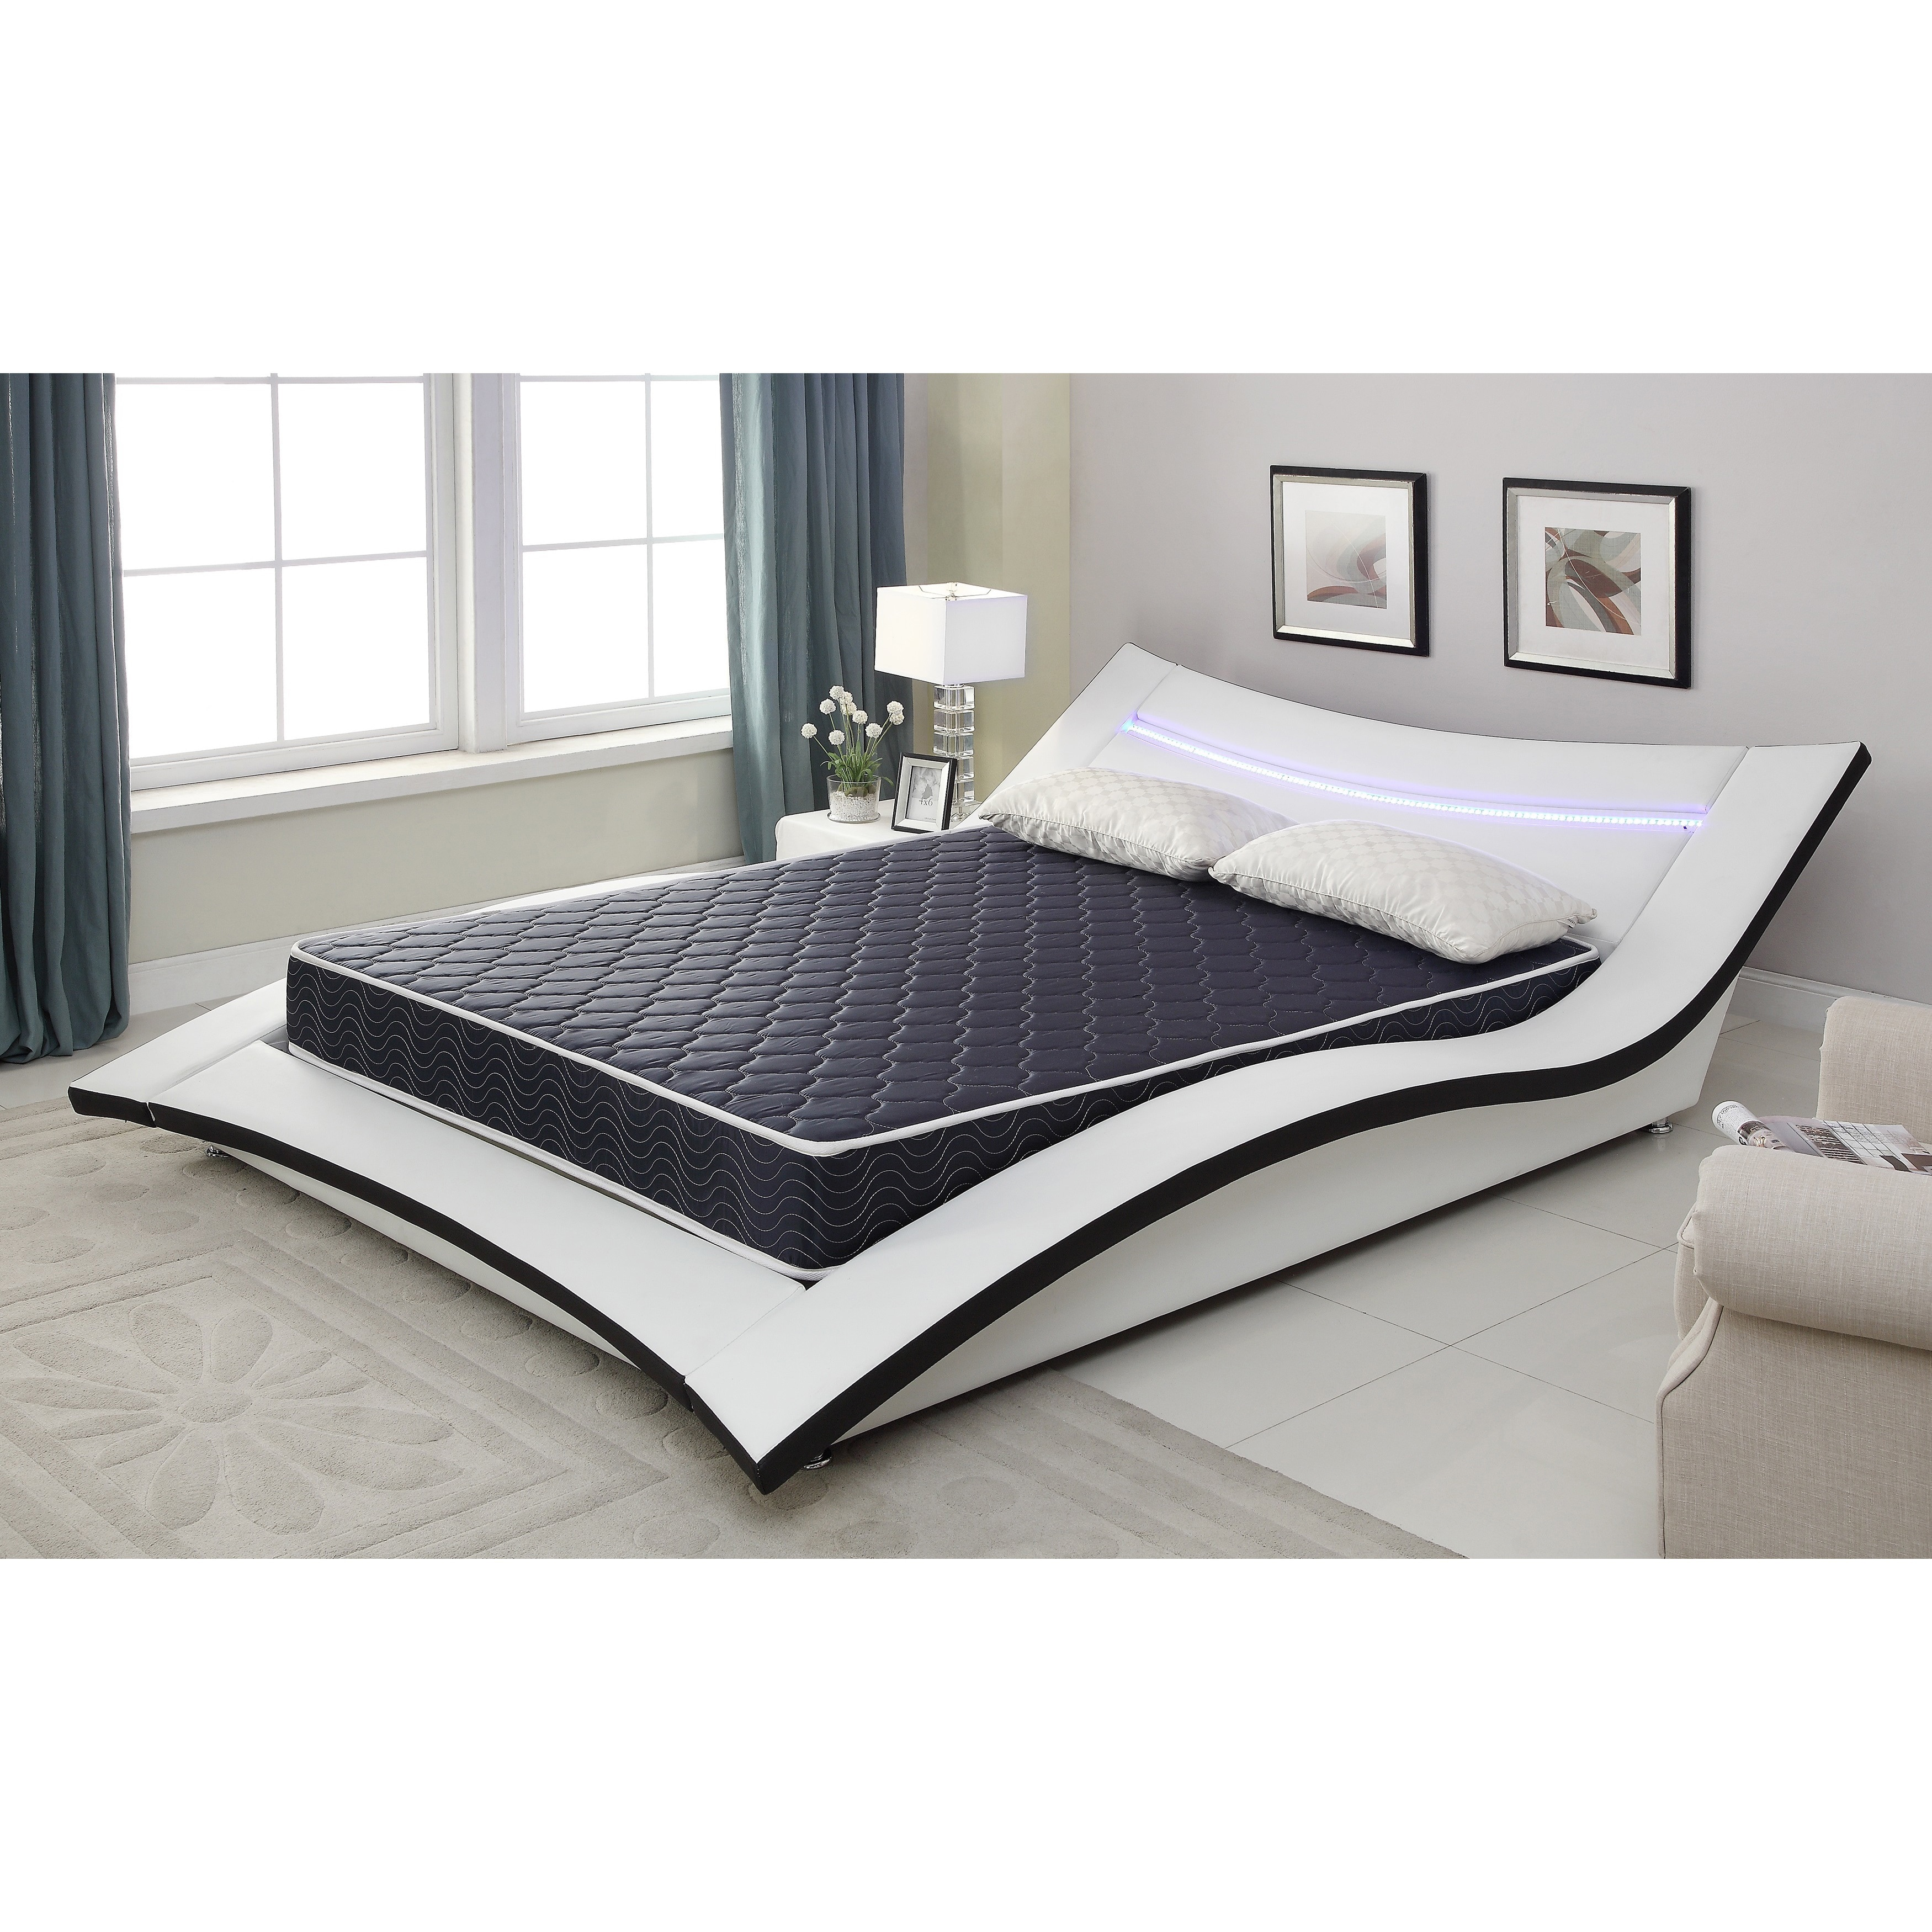 Full Bed Mattress 6 Inch Full Size Foam Mattress Covered In A Waterproof Fabric